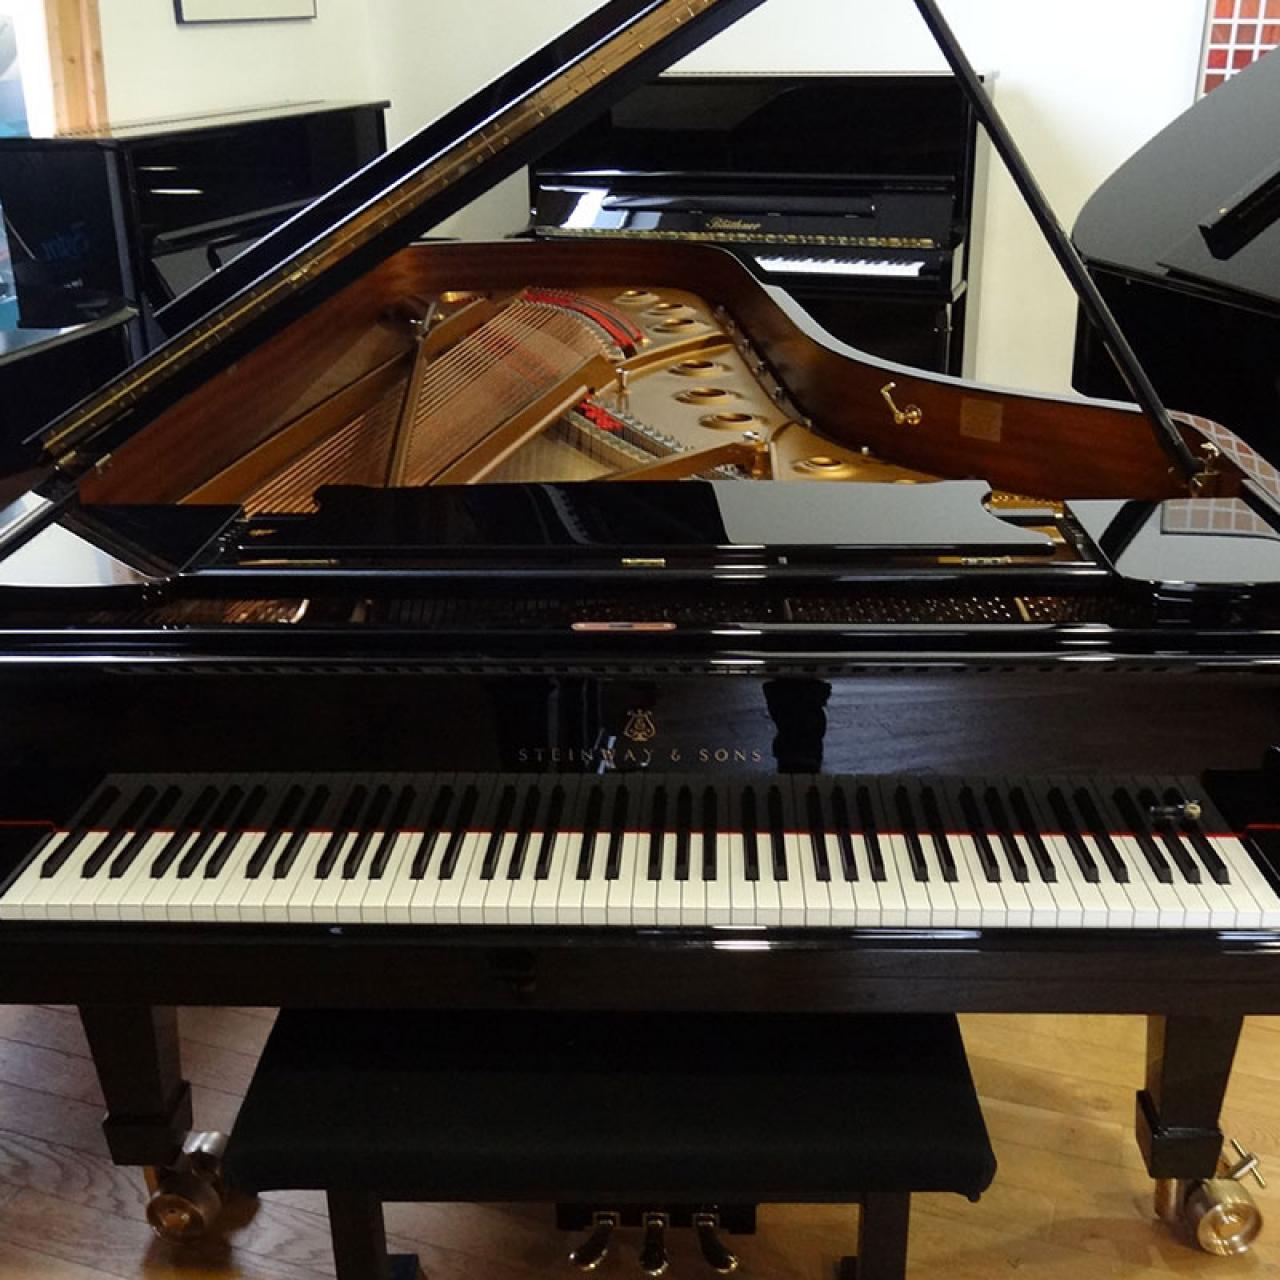 STEINWAY&SONS D274